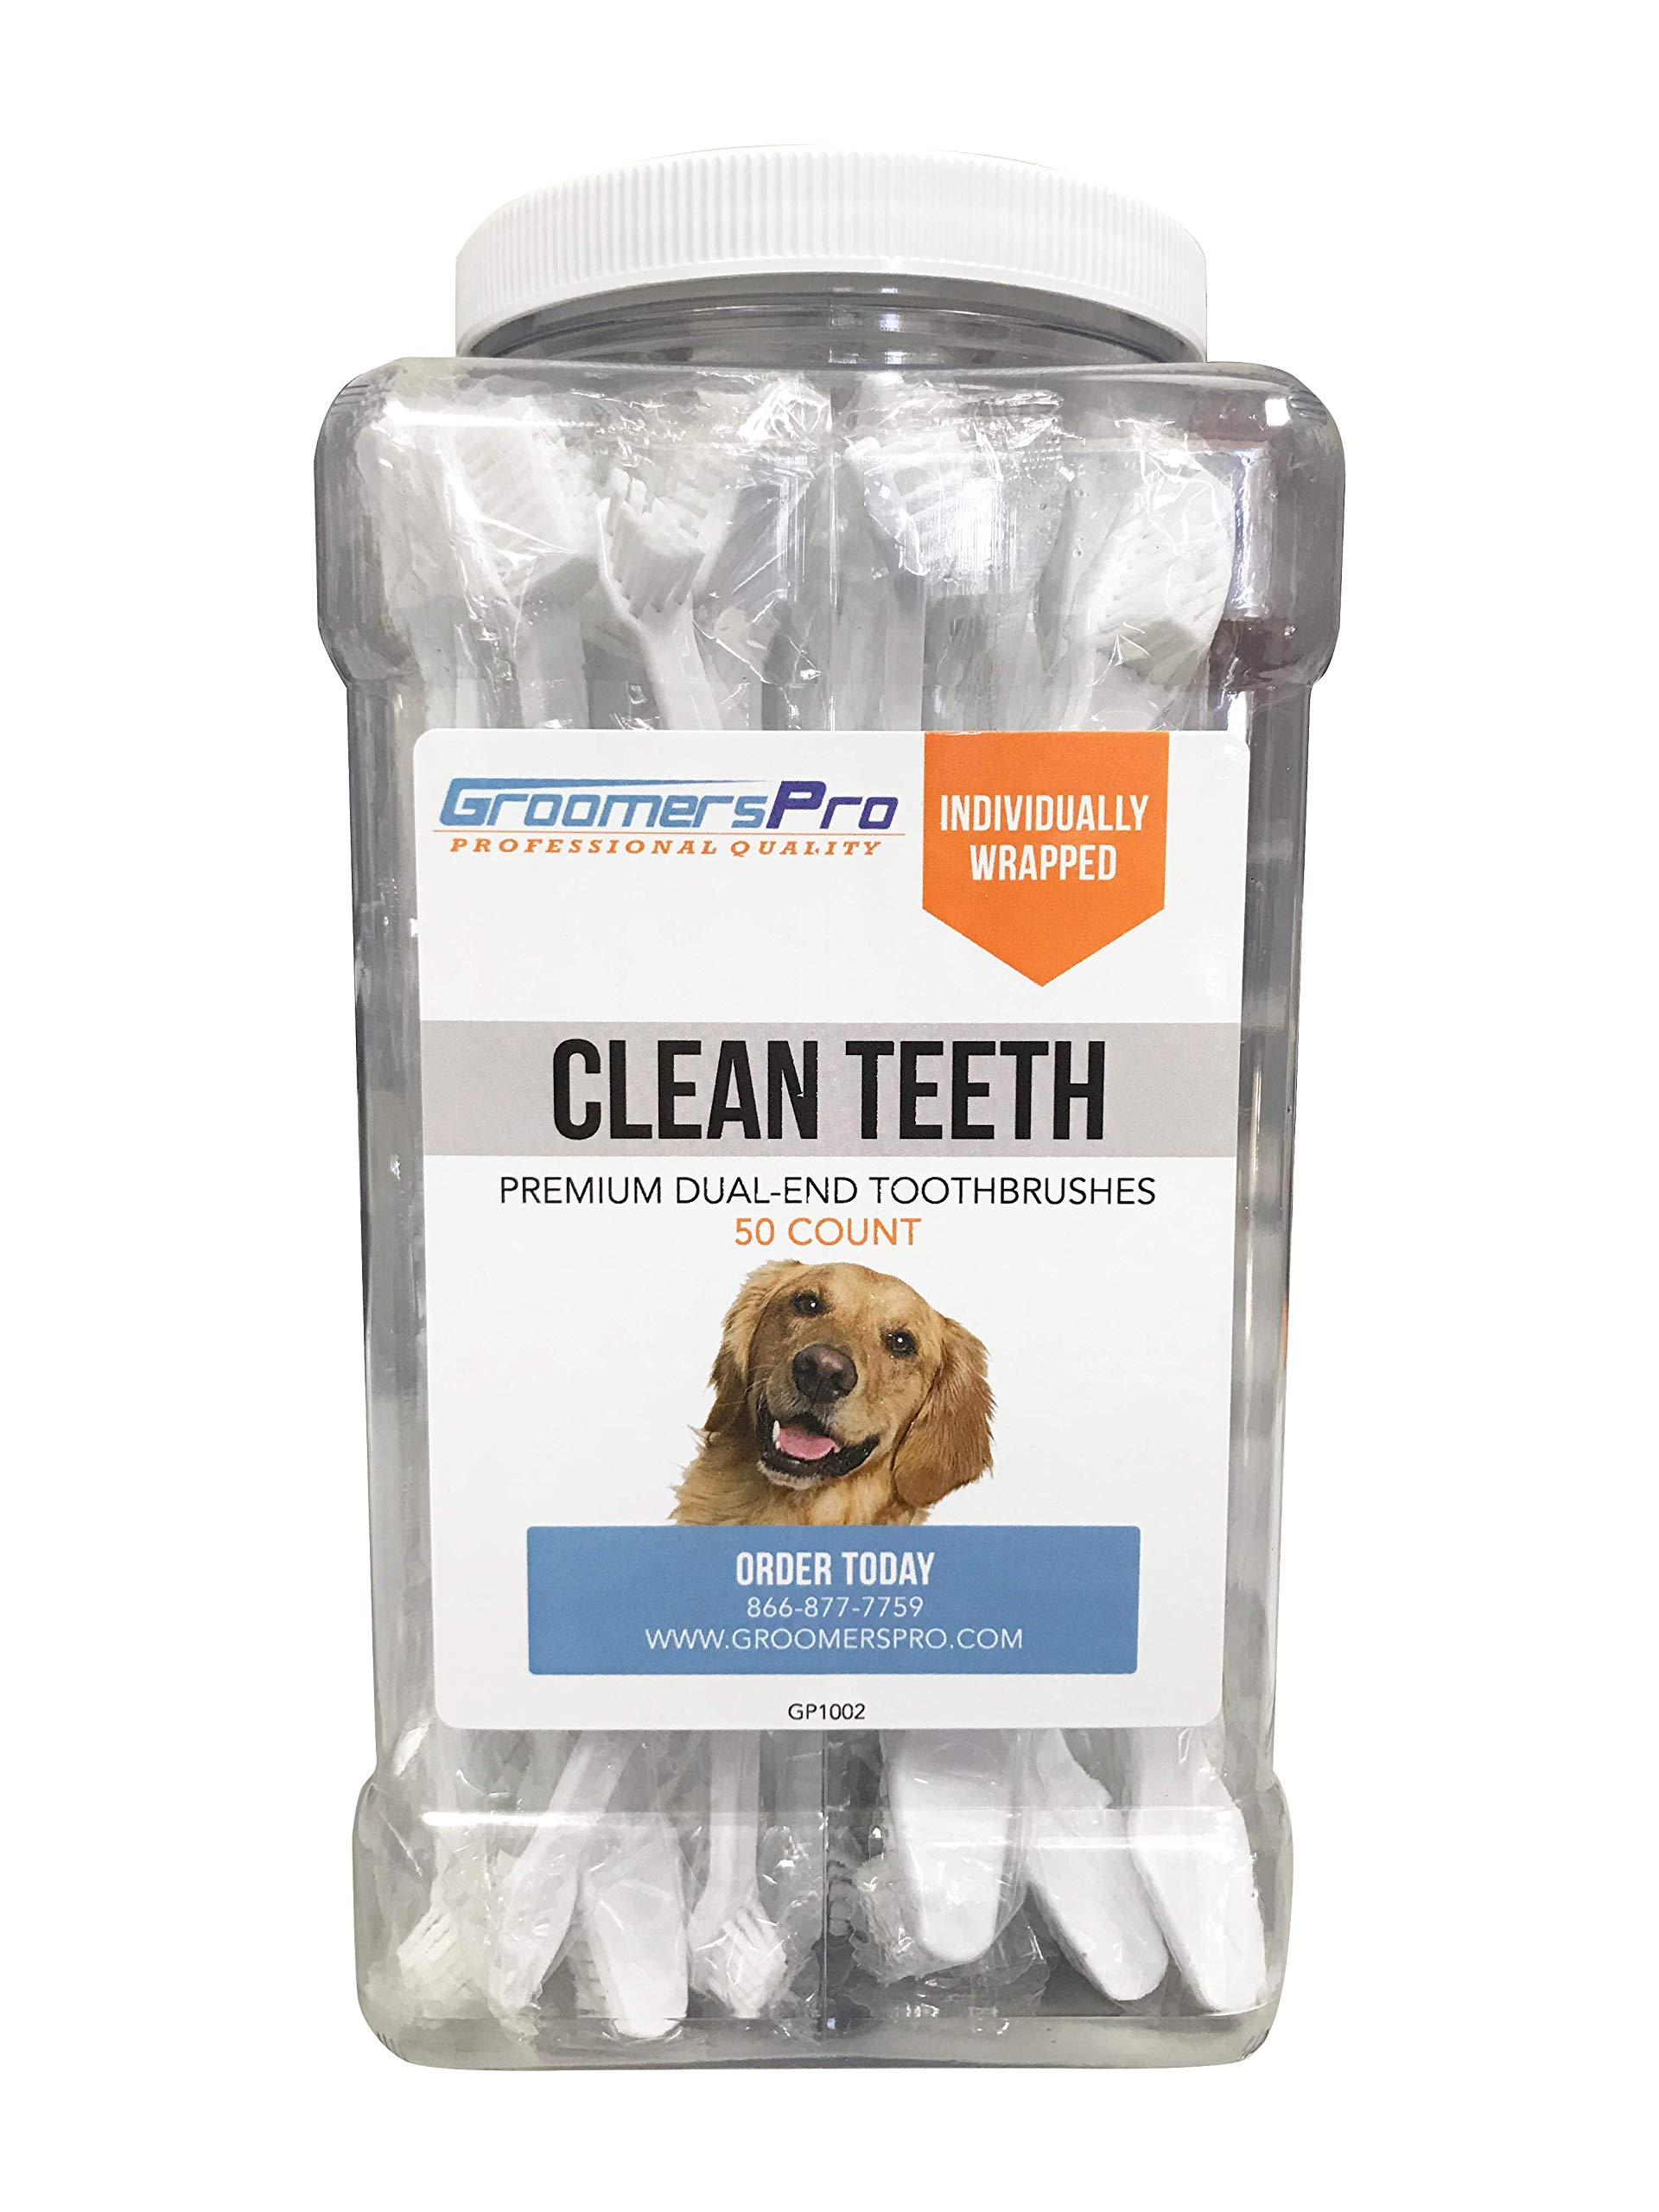 Groomers Pro Premium Dual-End Toothbrushes for Dogs by Groomers Pro